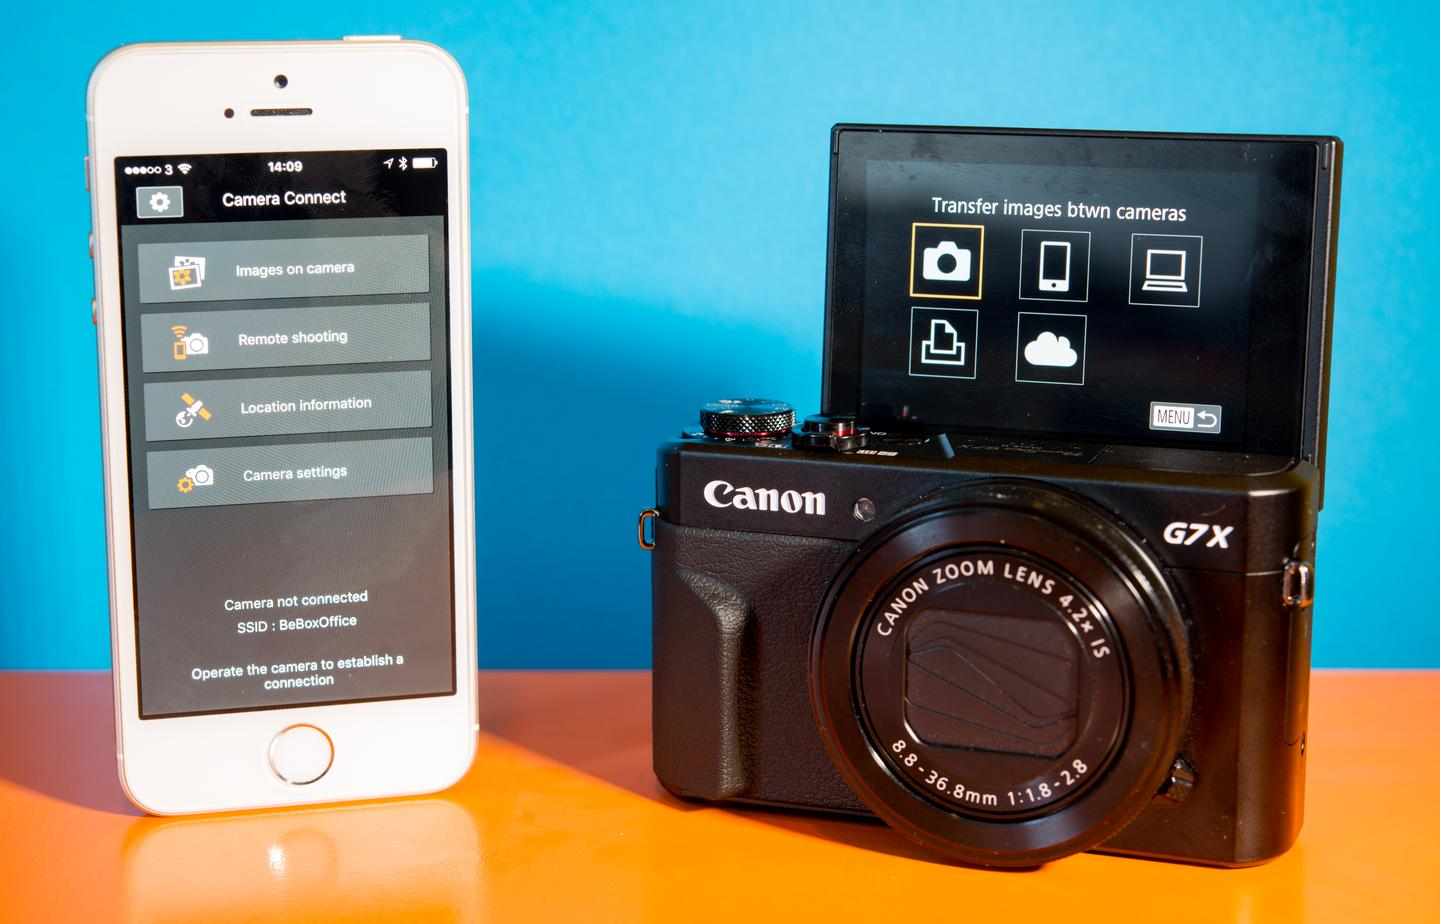 The Wi-Fi menu of the Canon Powershot G7X Mark II